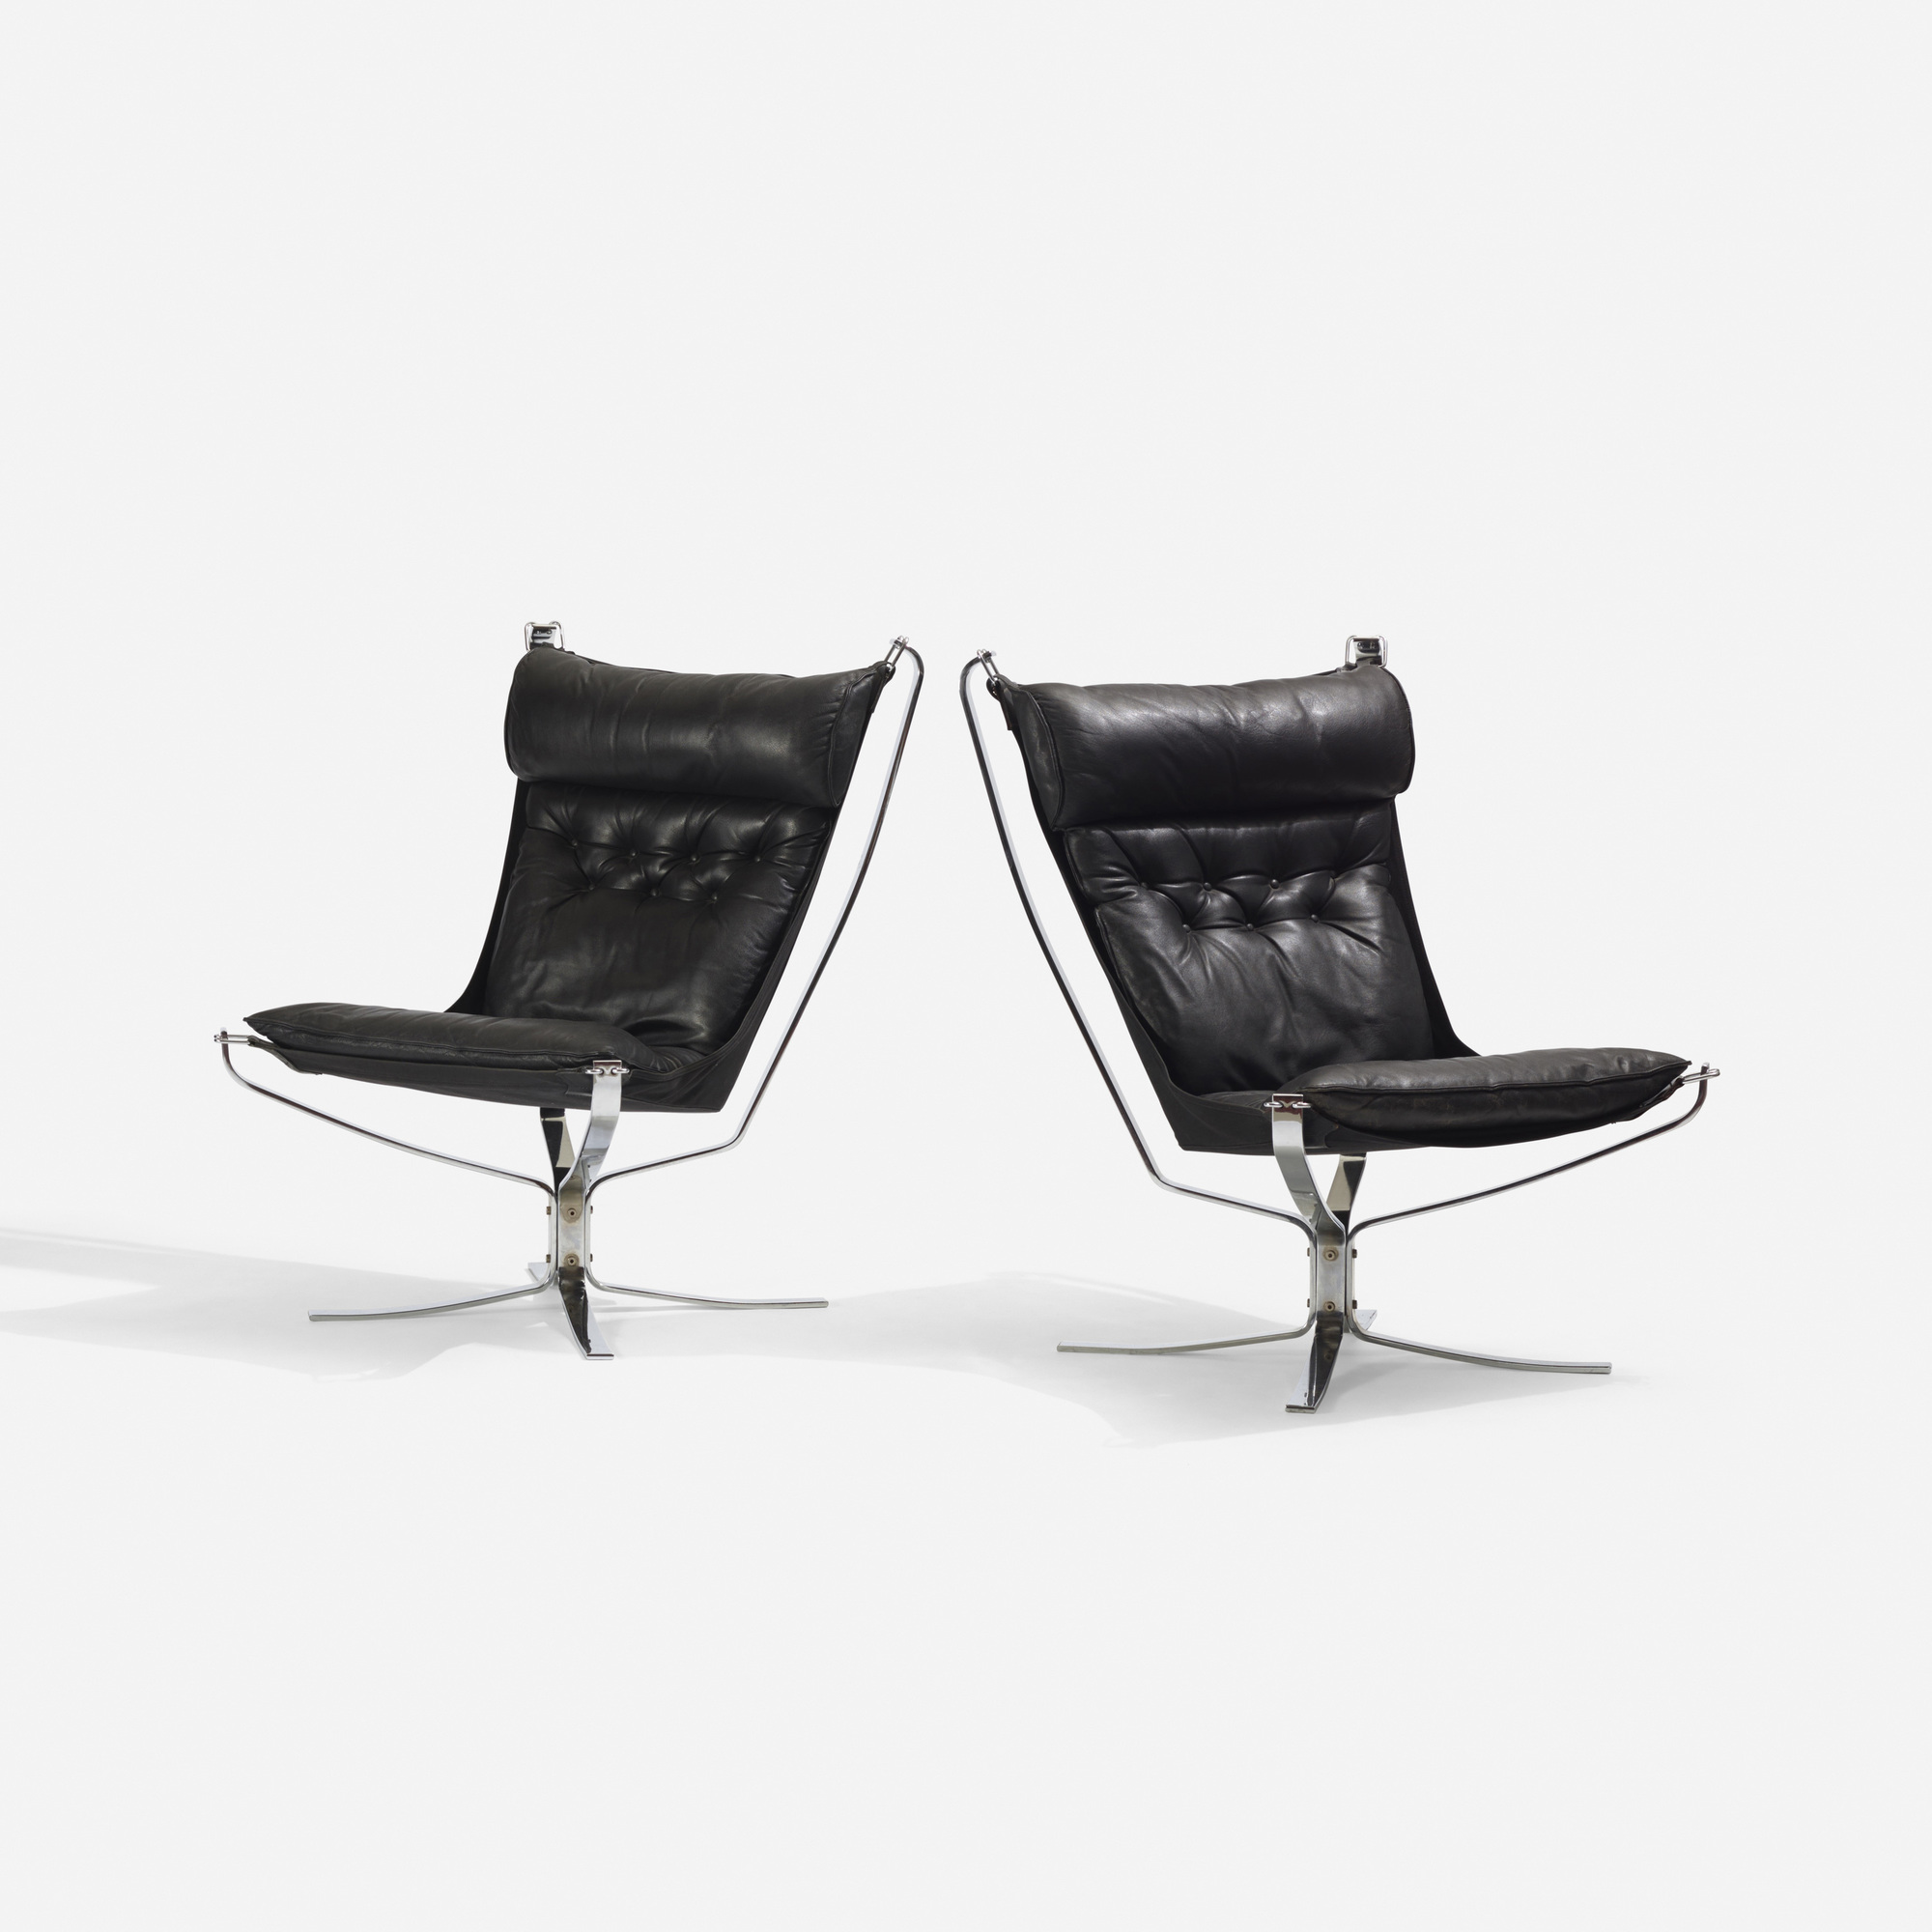 179: Sigurd Resell / Falcon chairs, pair (2 of 3)